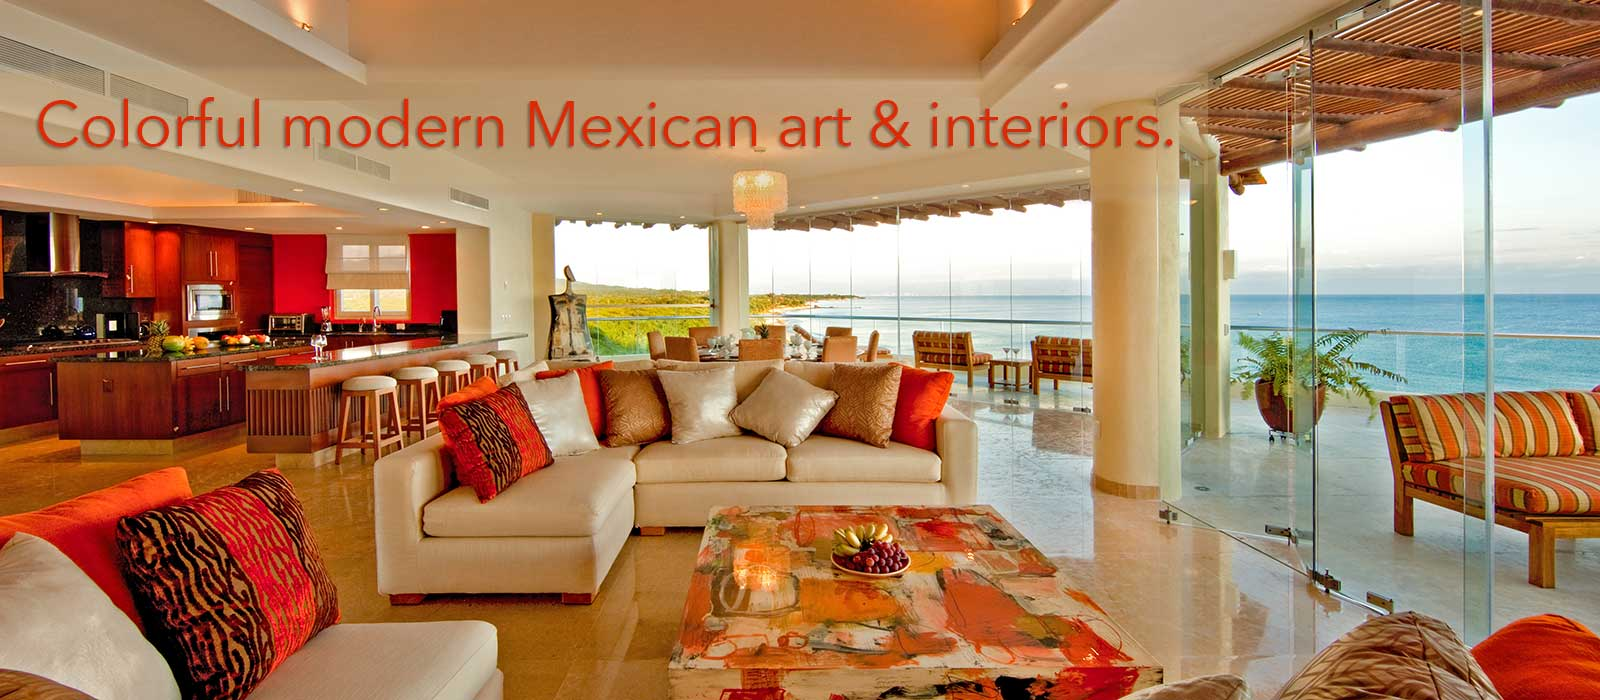 PVSR - The Glass Penthouse at Punta de Mita Mexico - PVSR 604